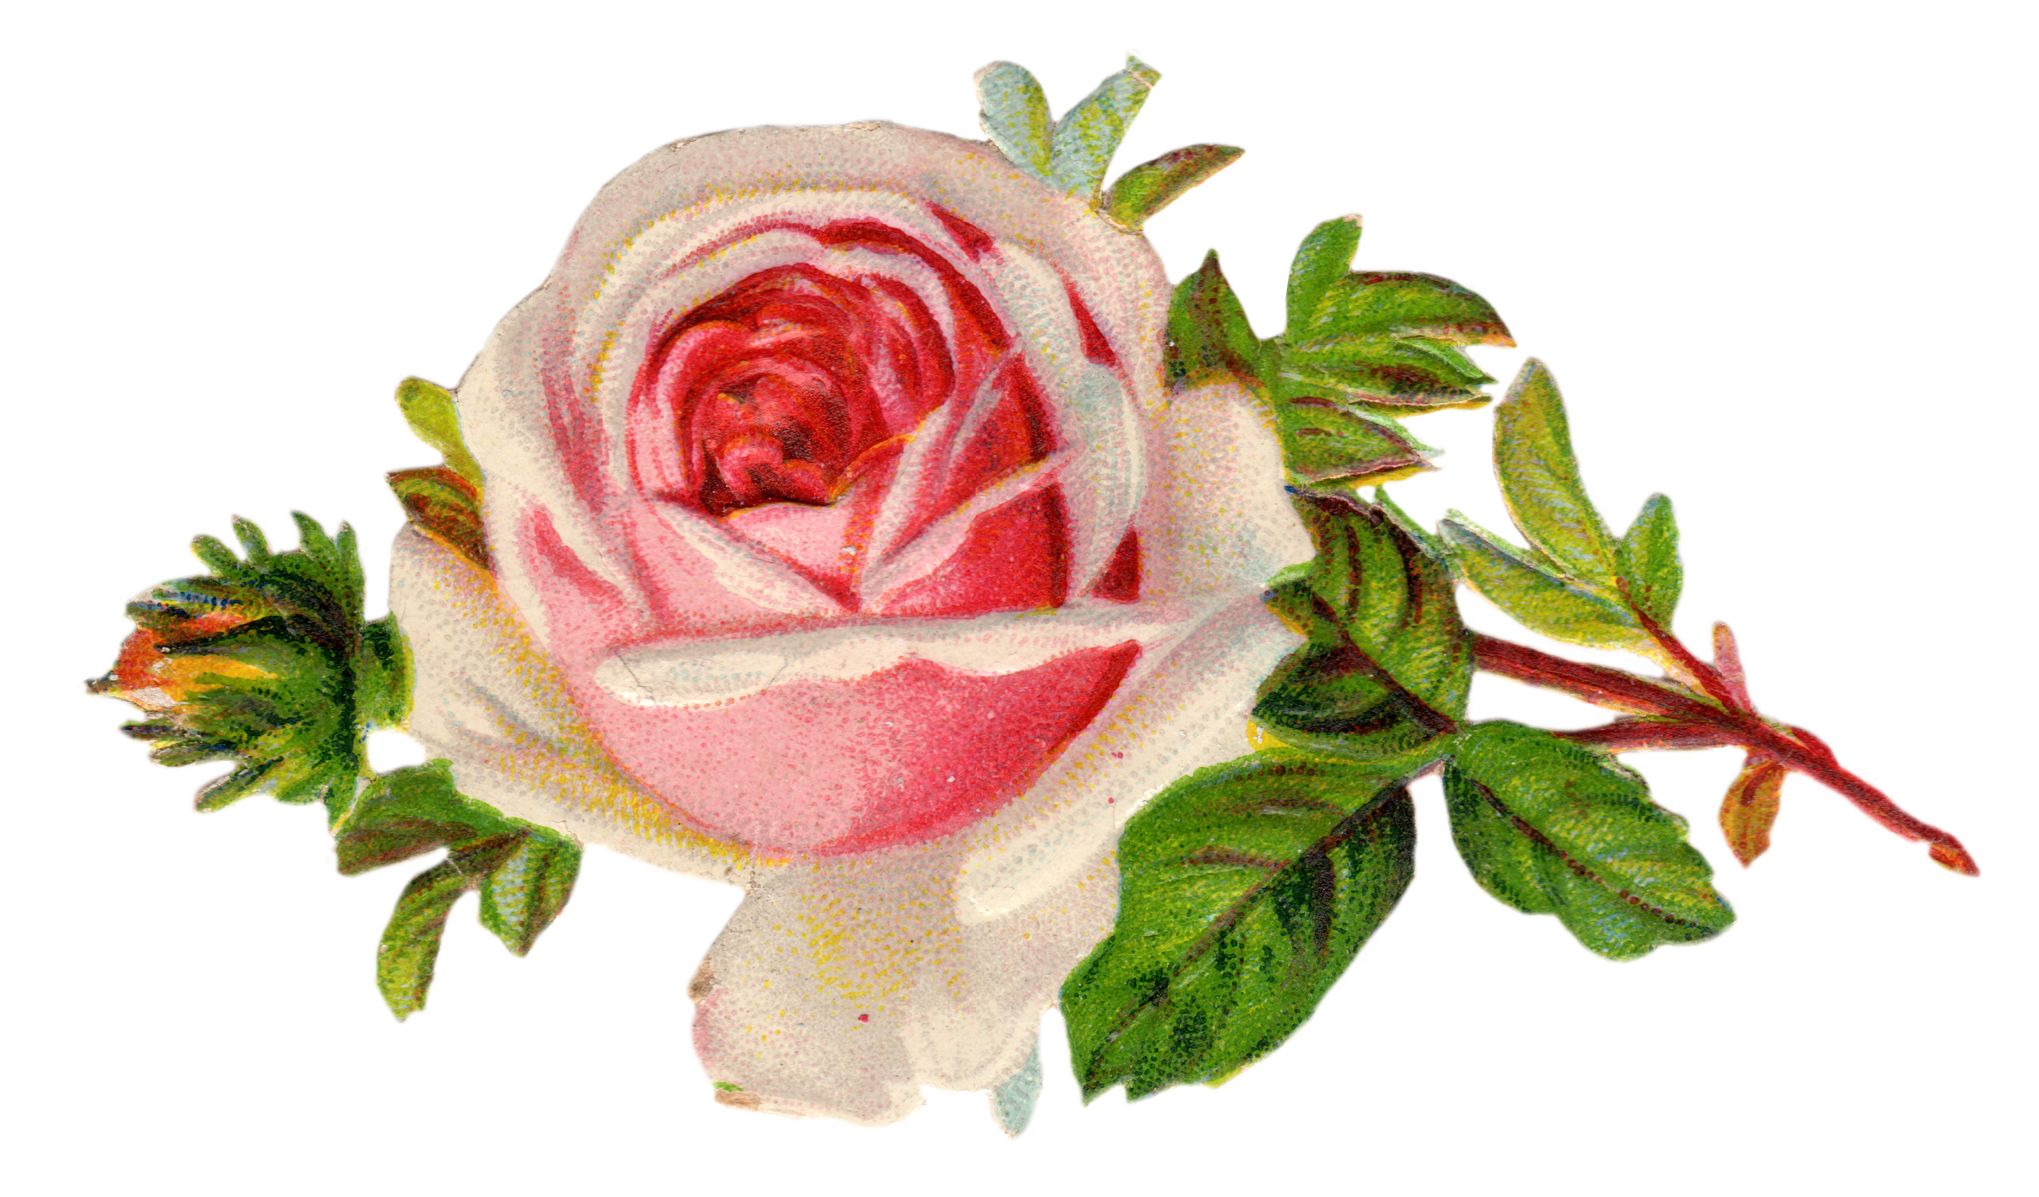 Old roses clipart image transparent stock Free Art Rose, Download Free Clip Art, Free Clip Art on Clipart Library image transparent stock